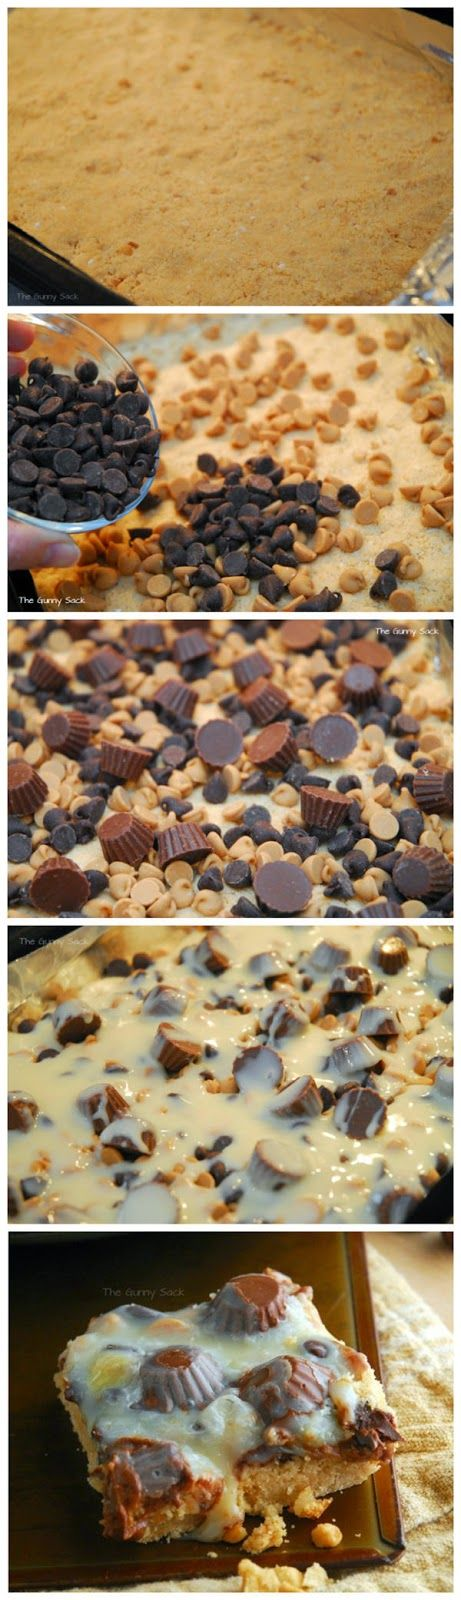 Reese's Peanut Butter Cup Cookie Bars - firstyum